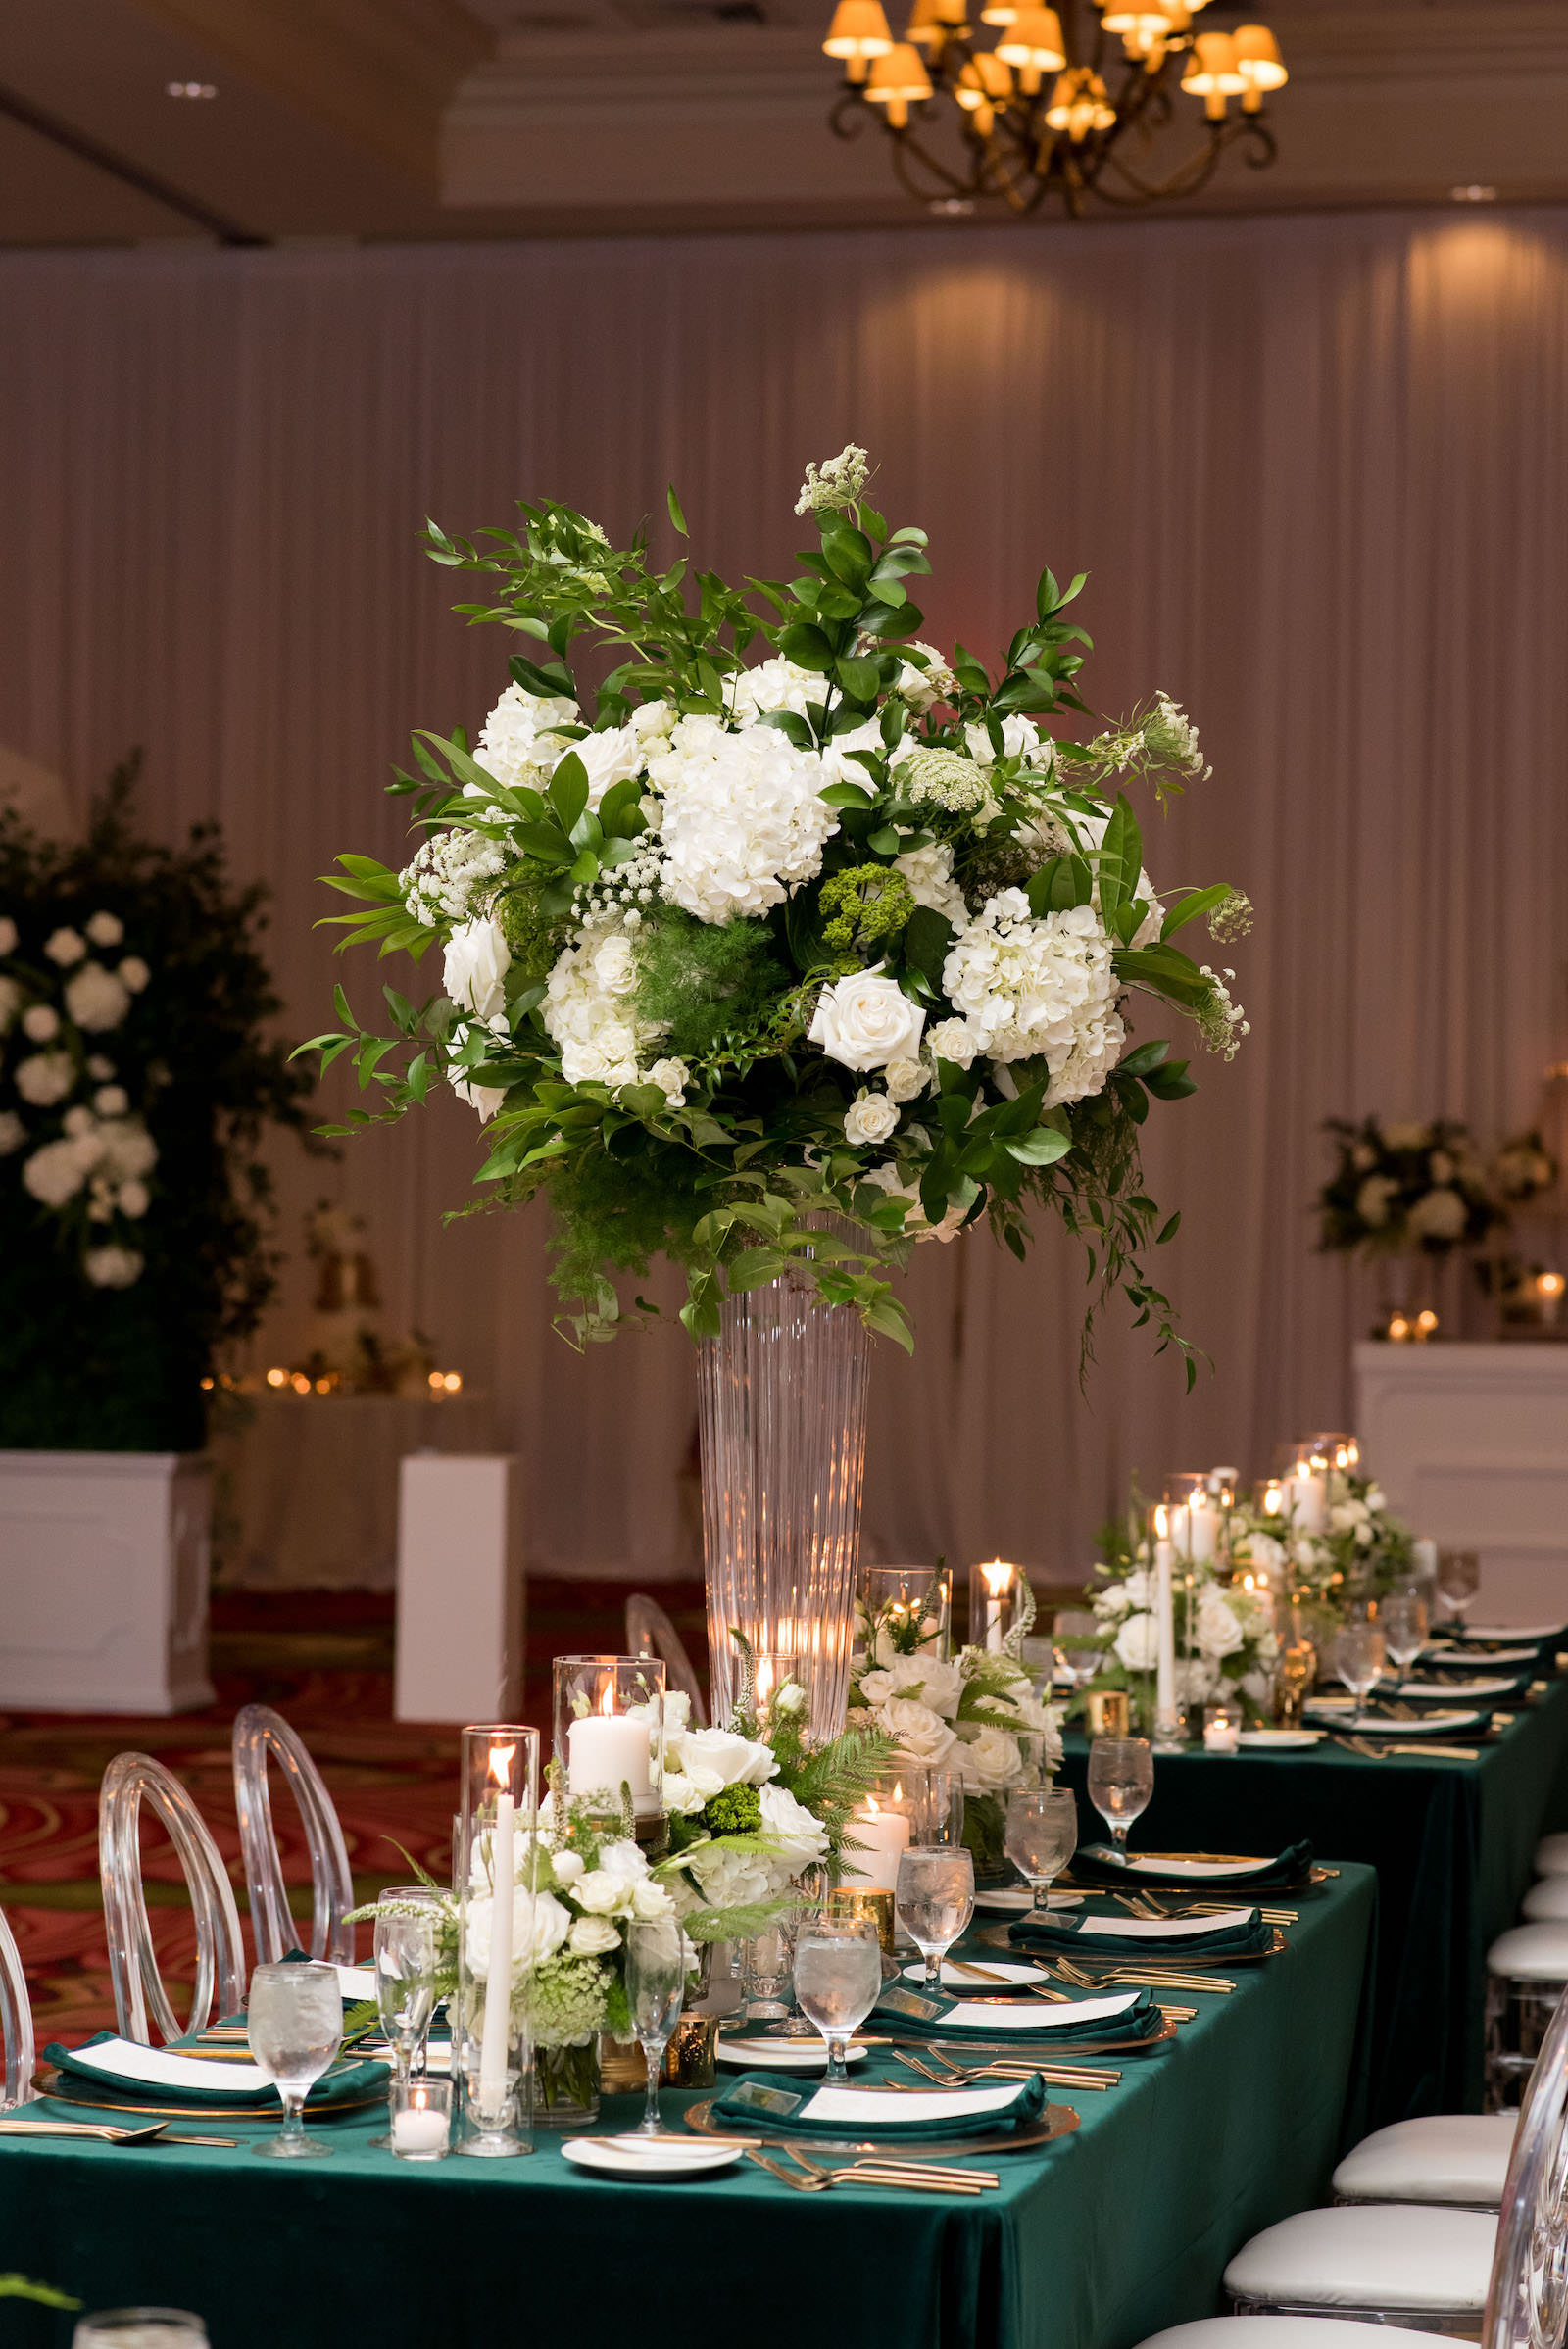 Elegant Wedding Reception Decor, Long Feasting Table with Emerald Green Linens, Gold Rimmed Chargers and Flatware Candles, Tall White Roses and Greenery Floral Arrangements, Acrylic Chiavari Chairs | Tampa Bay Wedding Planner Parties A'la Carte | Wedding Chairs, Chargers, Chairs and Flatware Rentals A Chair Affair | Wedding Florist Bruce Wayne Florals